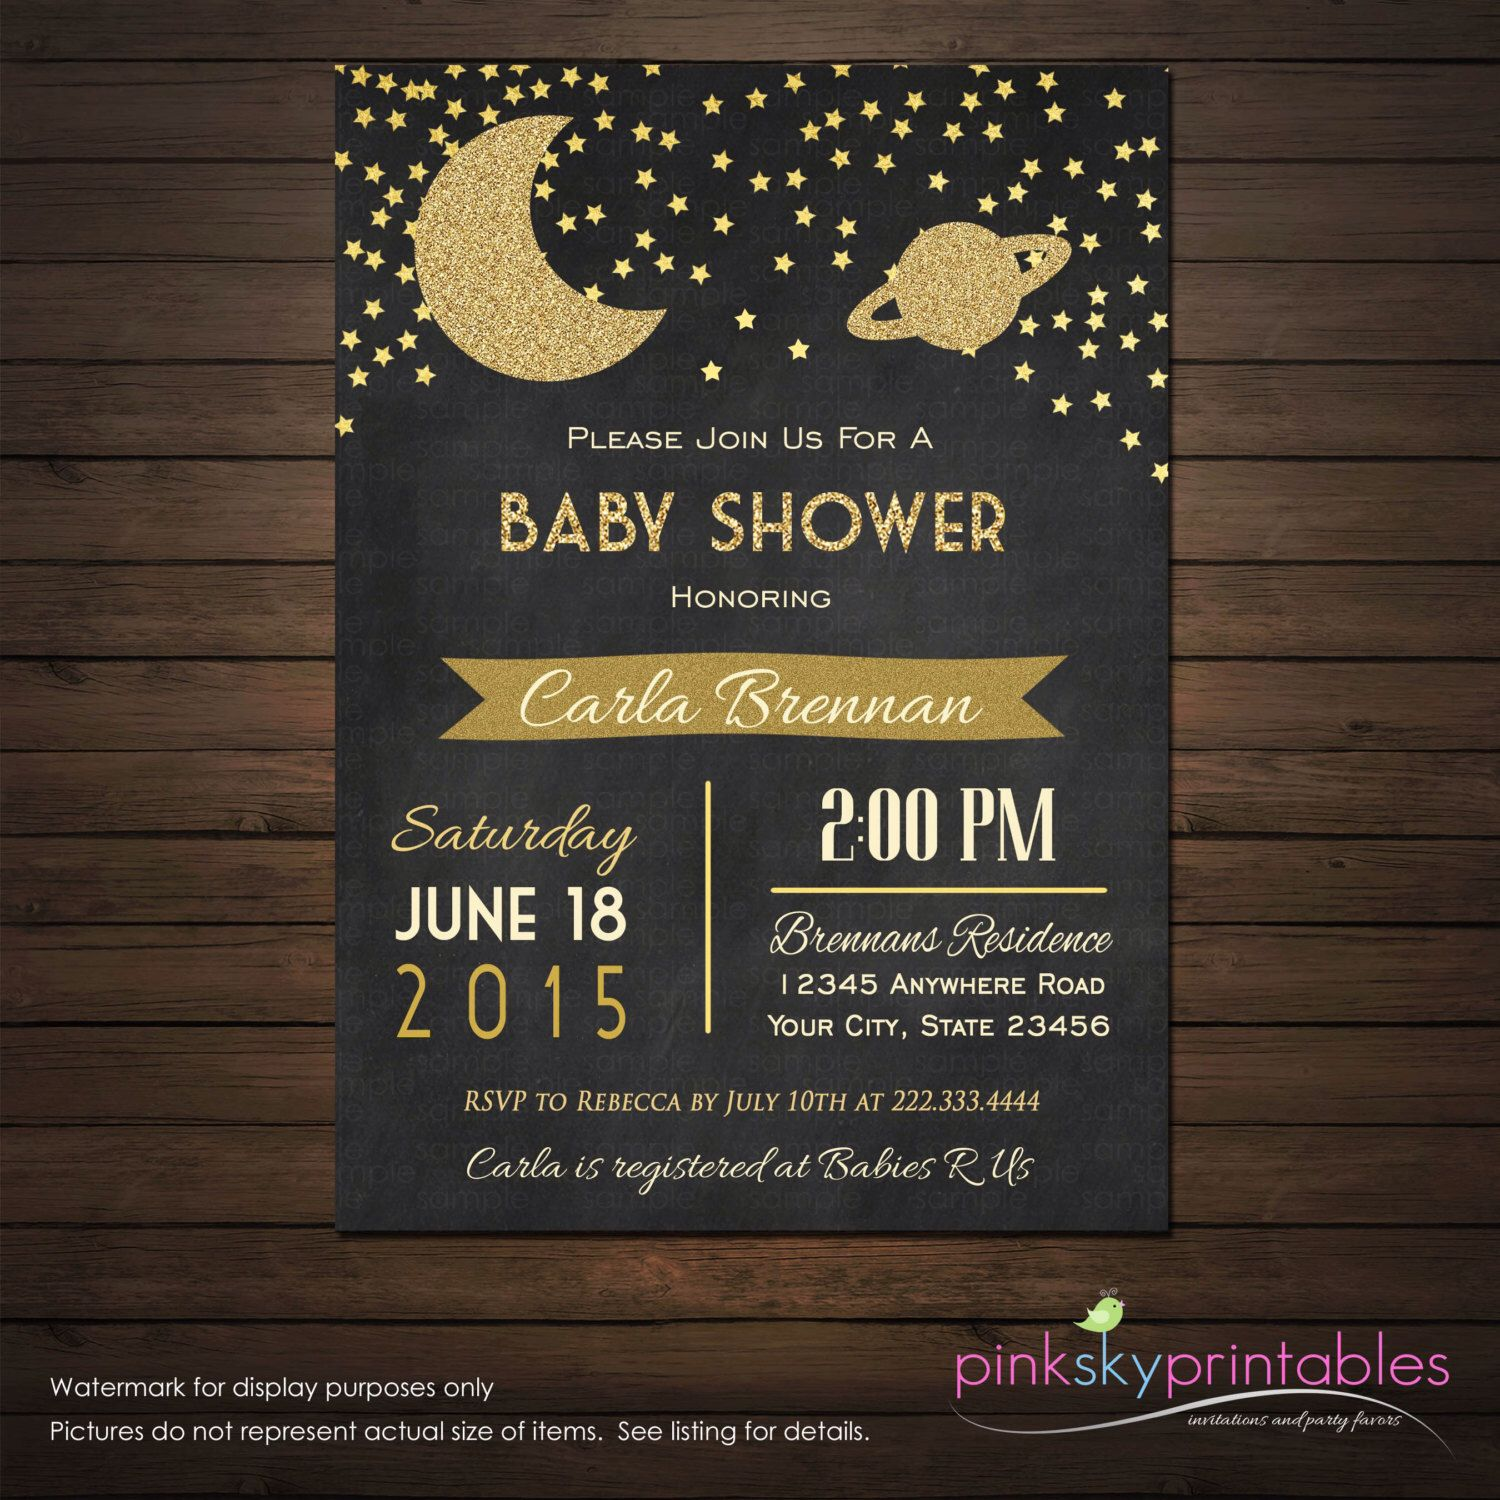 Moon and stars space galaxy baby shower invitations printable space galaxy baby shower invitations printable file gold stars glitter invitation chalkboard shower invitation diy by pinkskyprintables on etsy filmwisefo